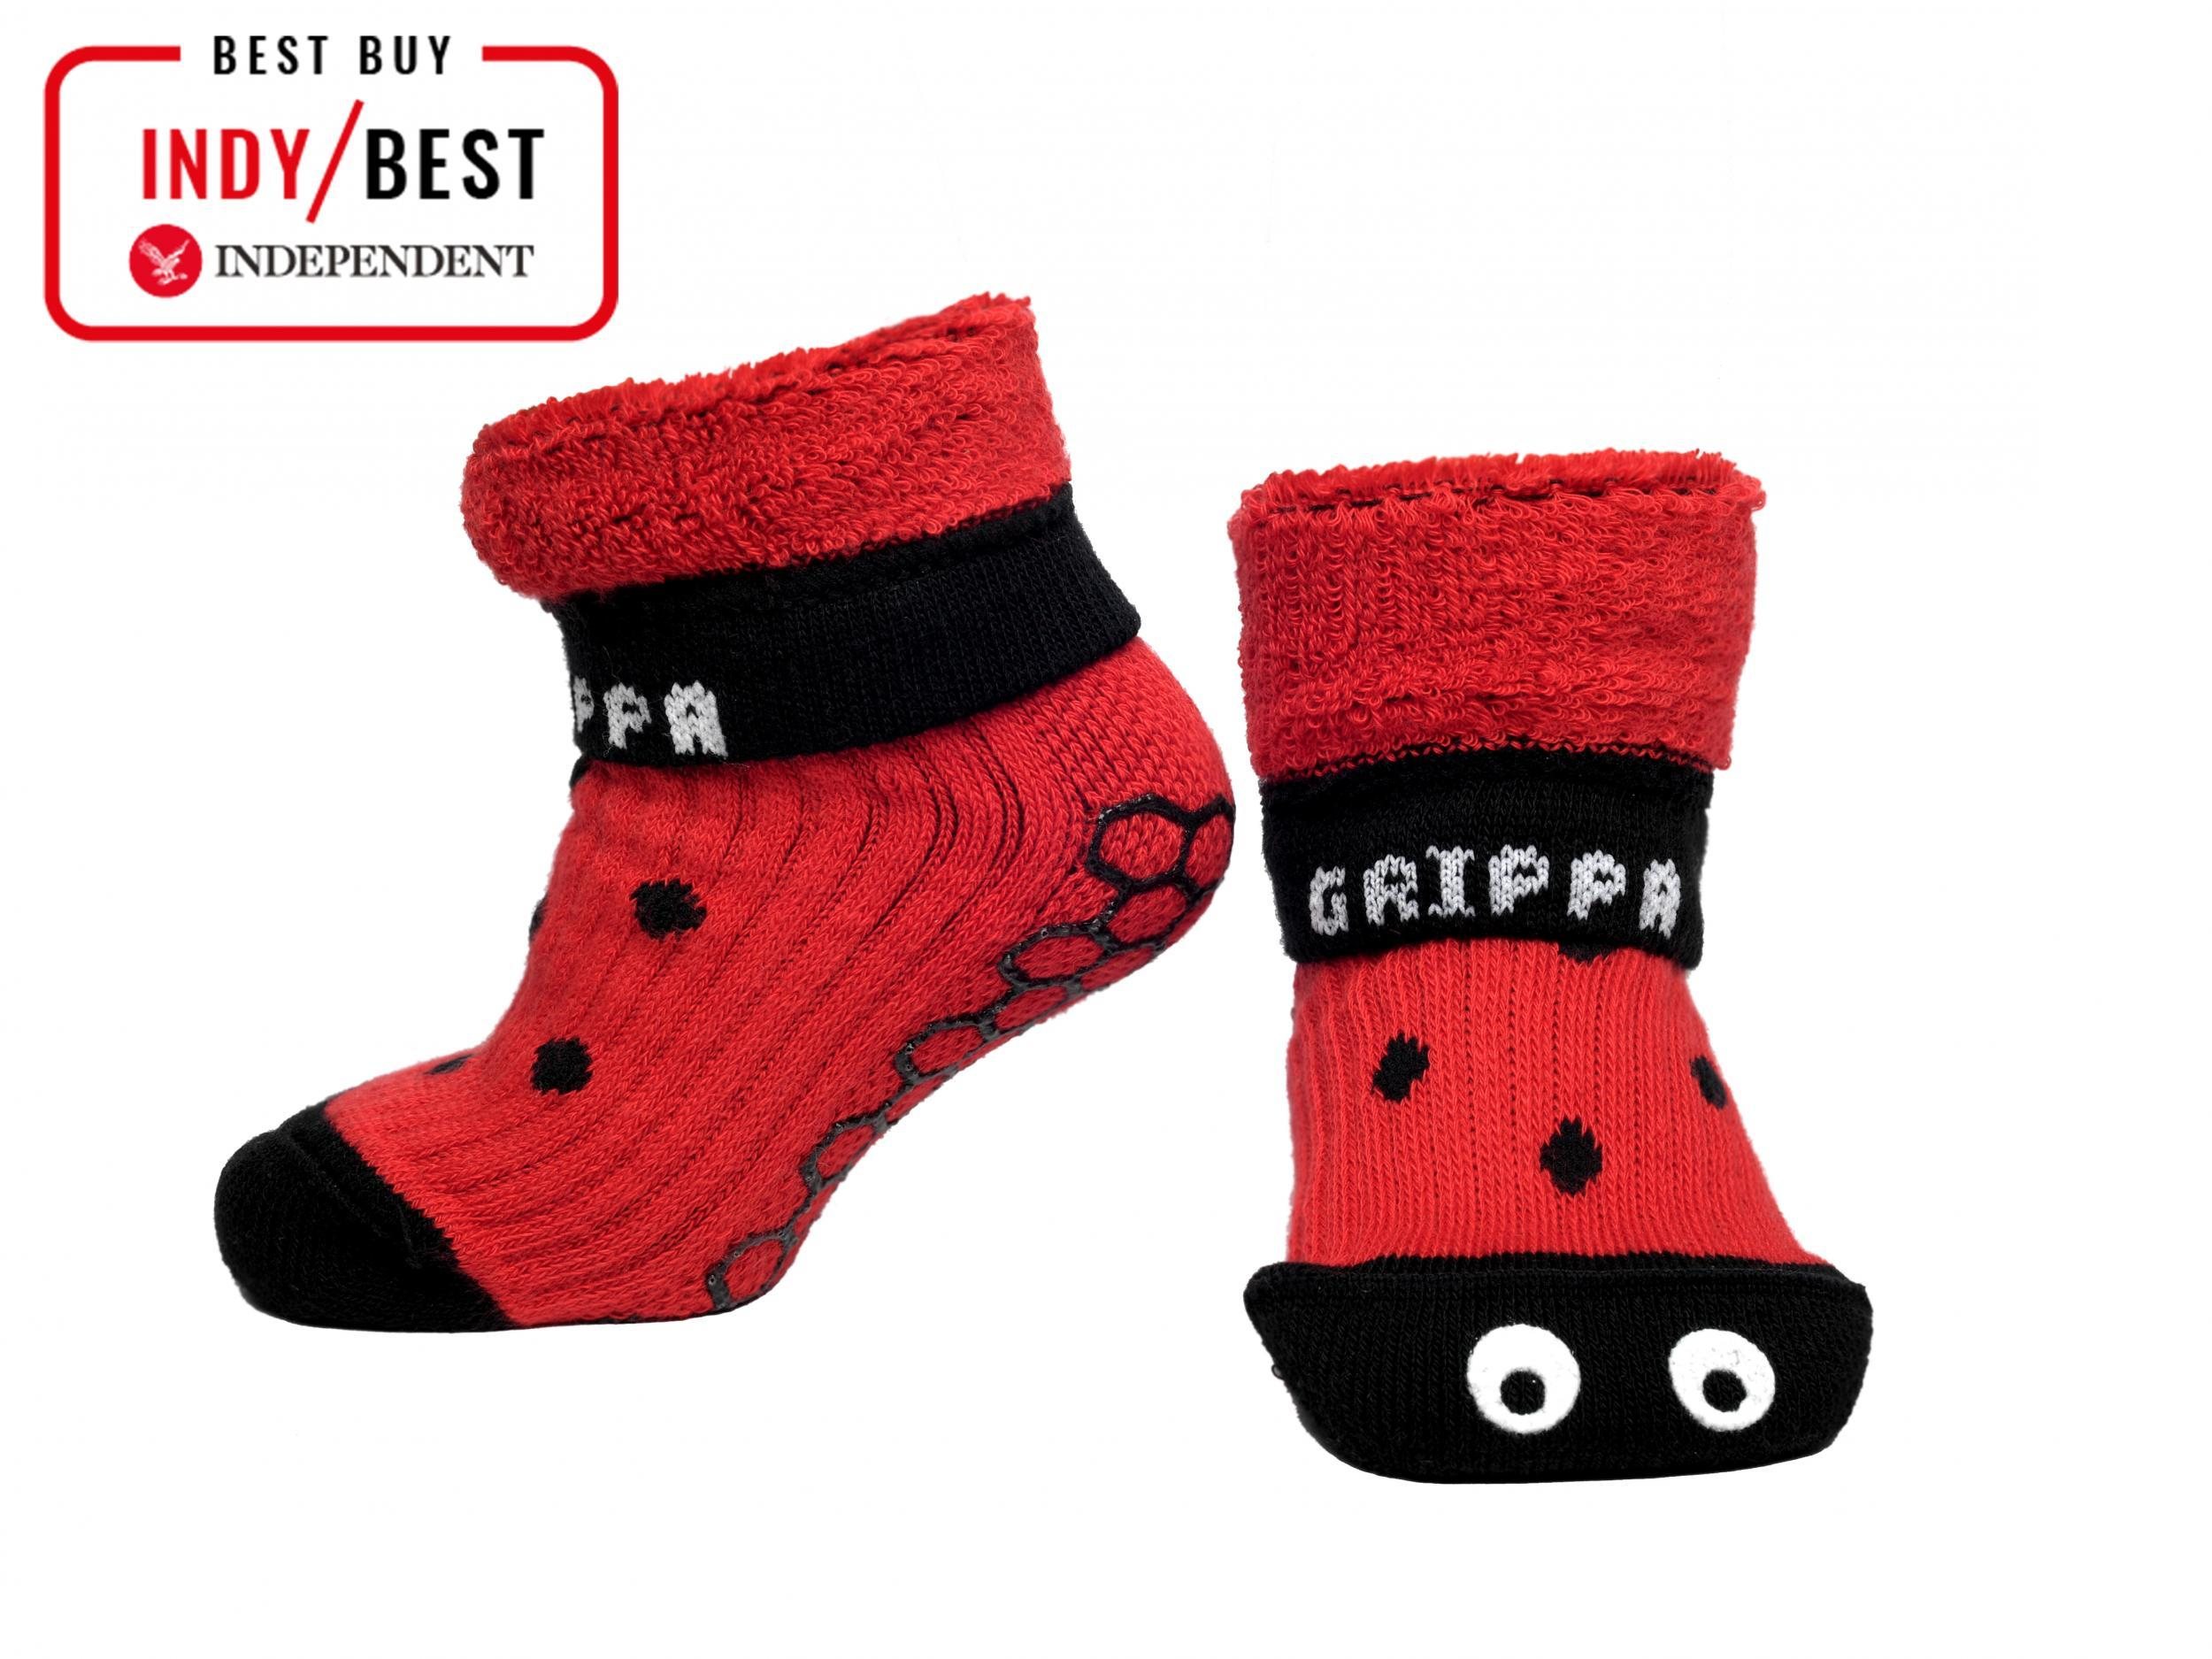 086f8df8 Best slipper socks for toddlers that are warm, comfortable and easy ...